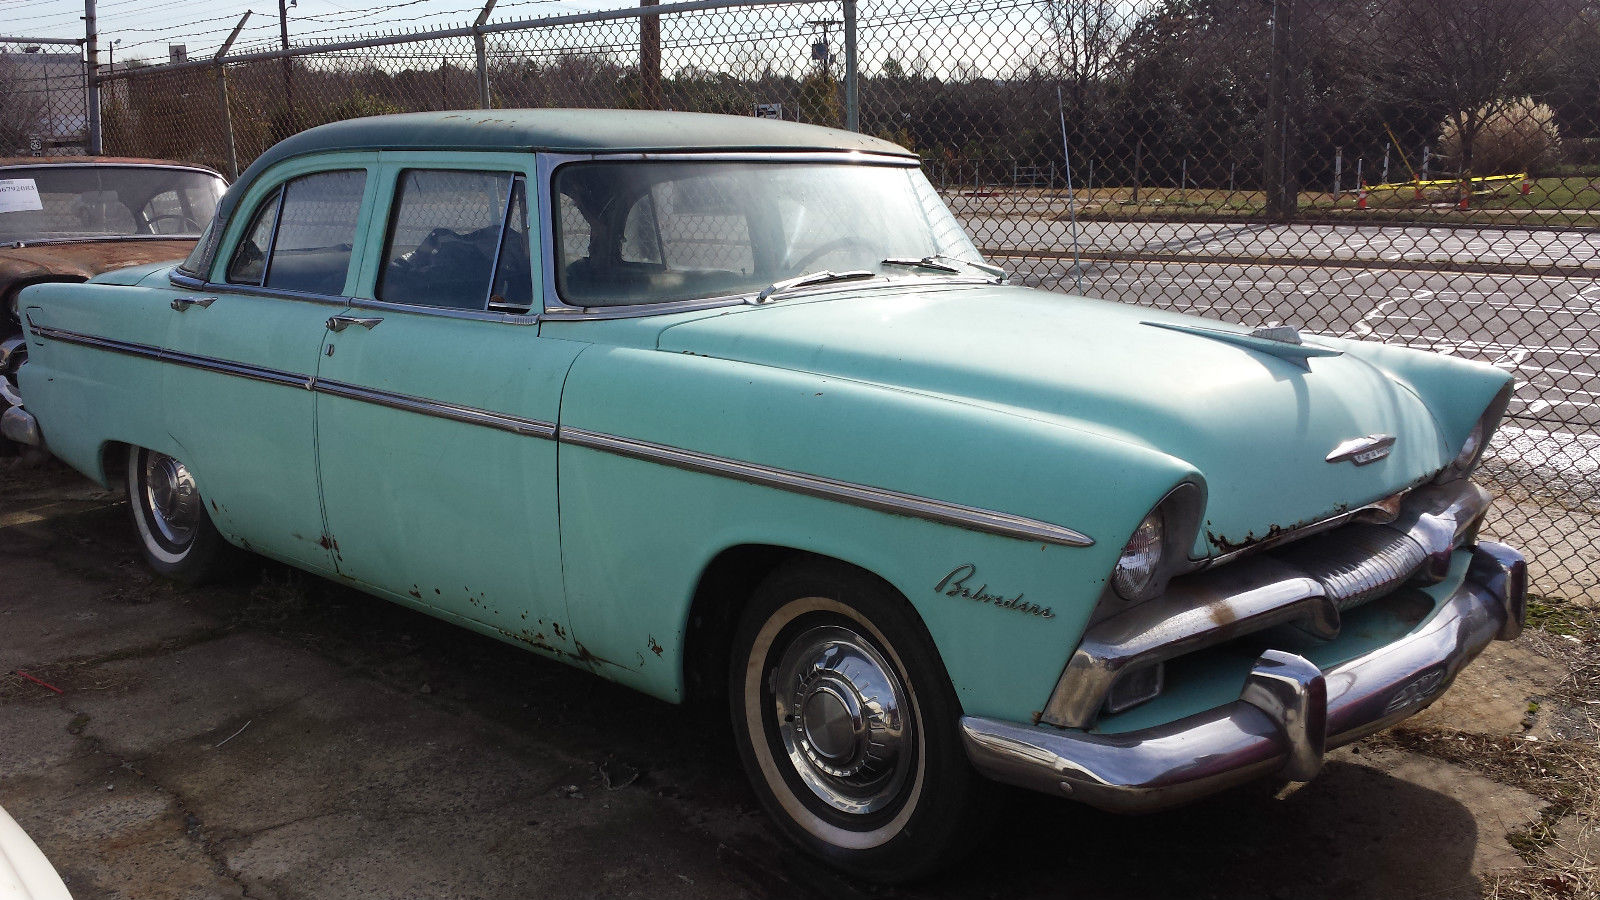 1955 plymouth belvedere 4 door with free parts car 2 for for 1955 plymouth belvedere 4 door sedan